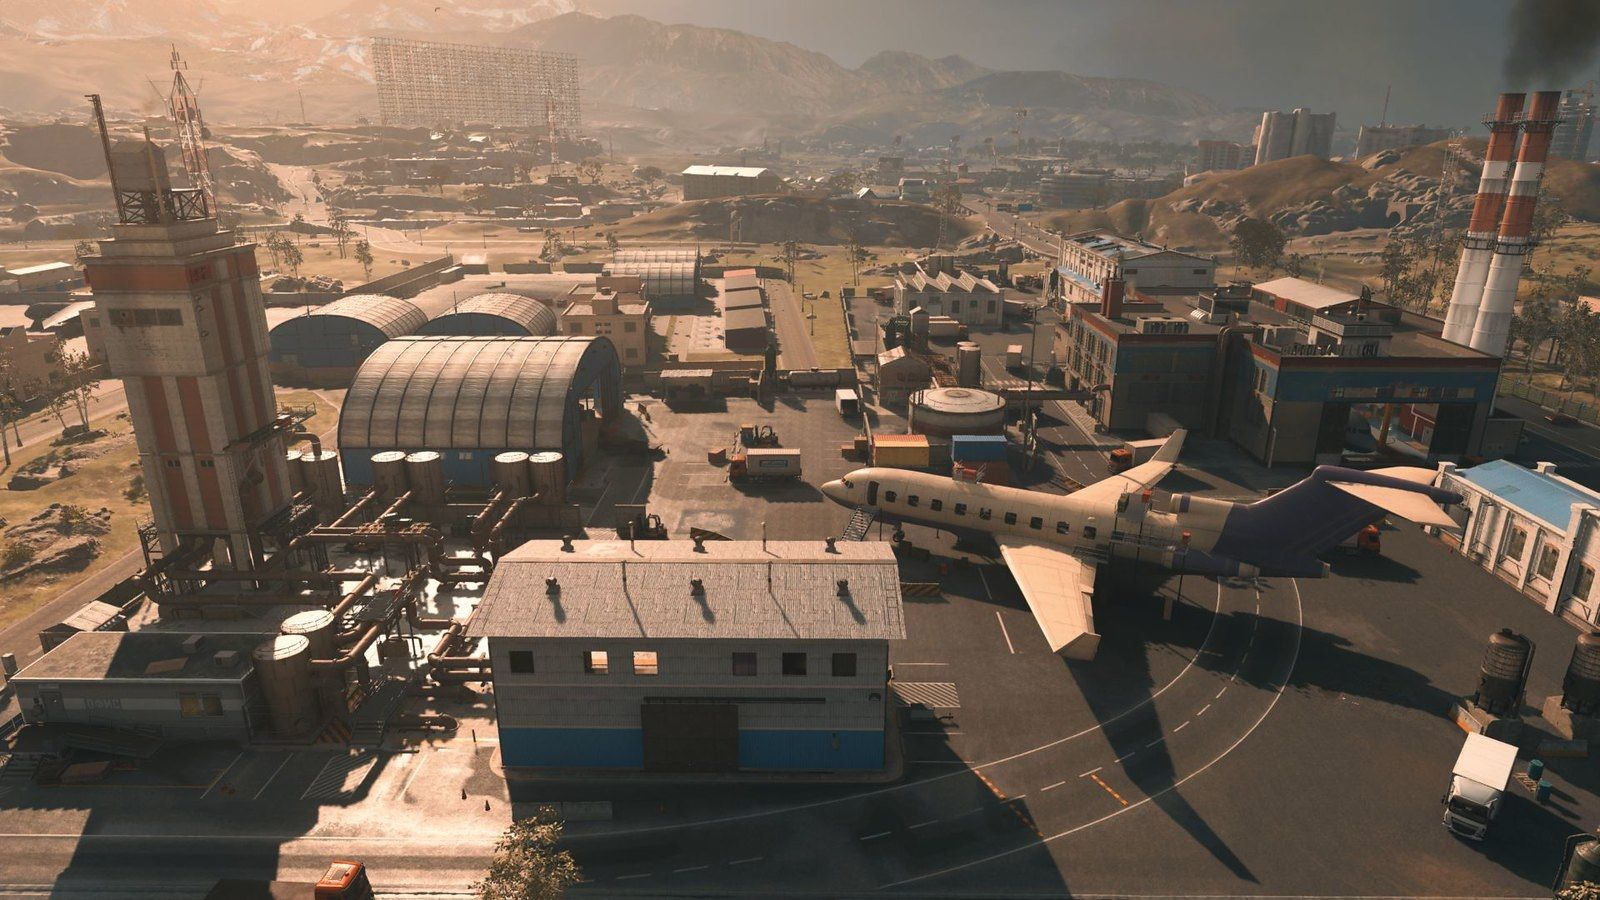 The aircraft factory is located a little to the west